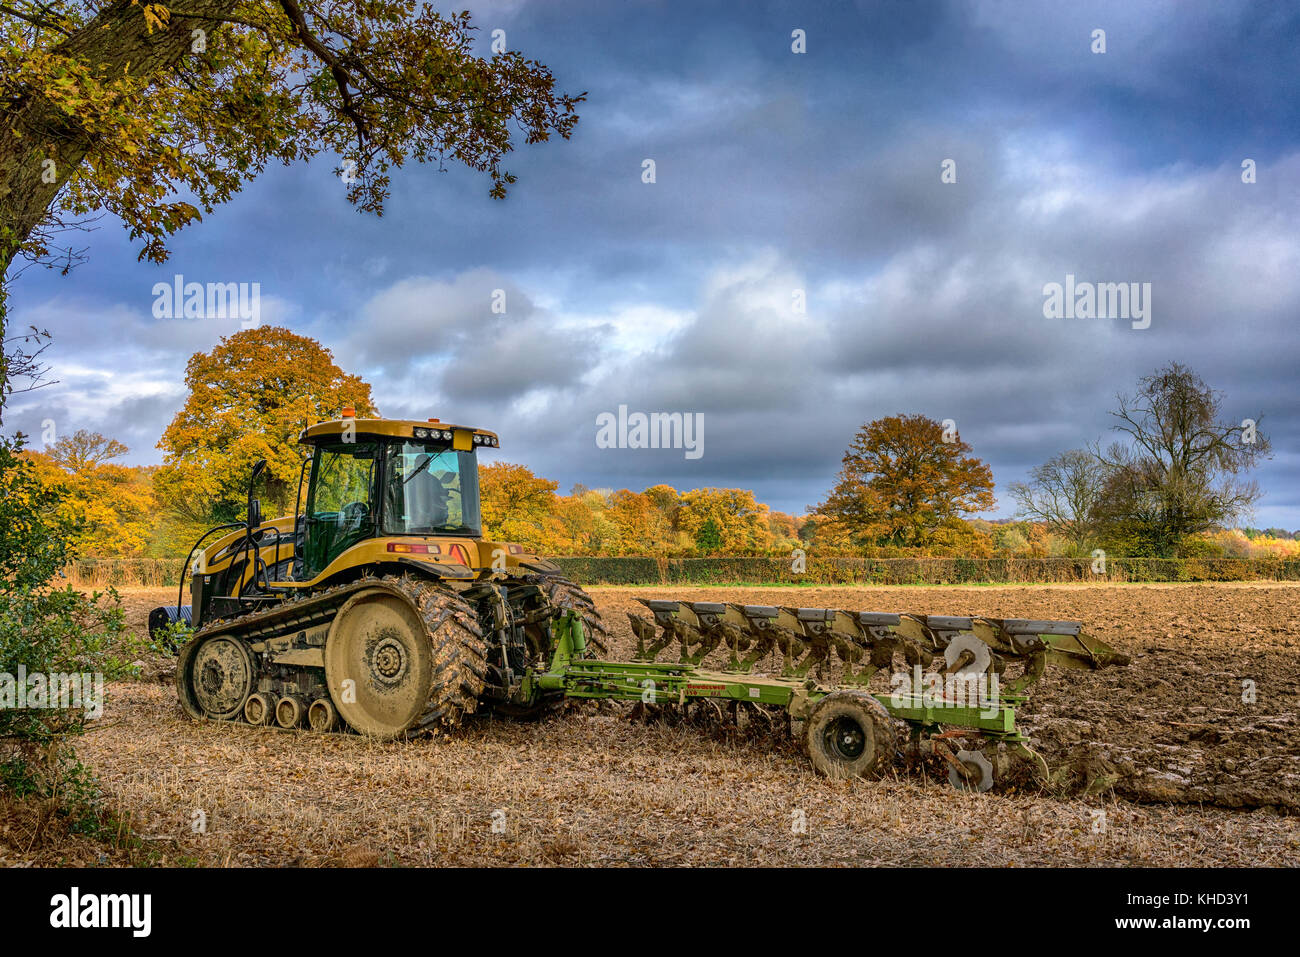 Modern tracked Tractor ploughing field in November in the Chilterns, Buckinghamshire. - Stock Image